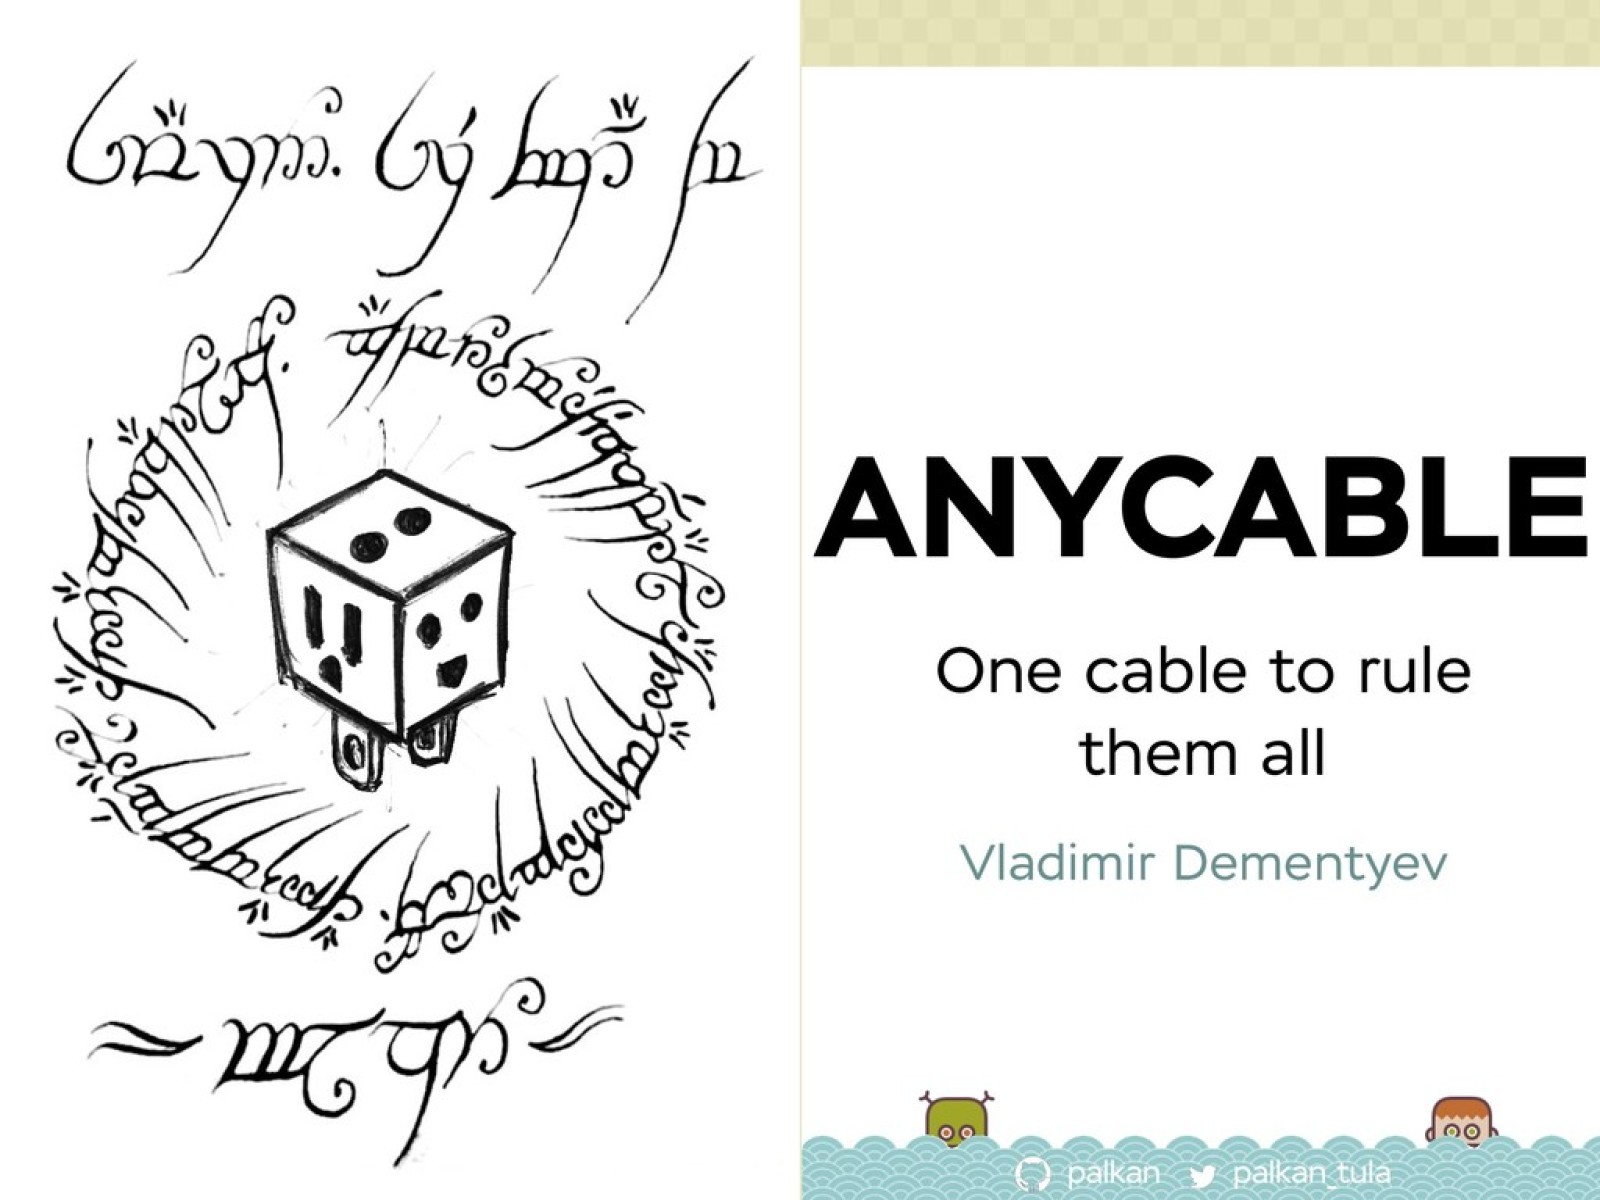 AnyCable: One cable to rule them all